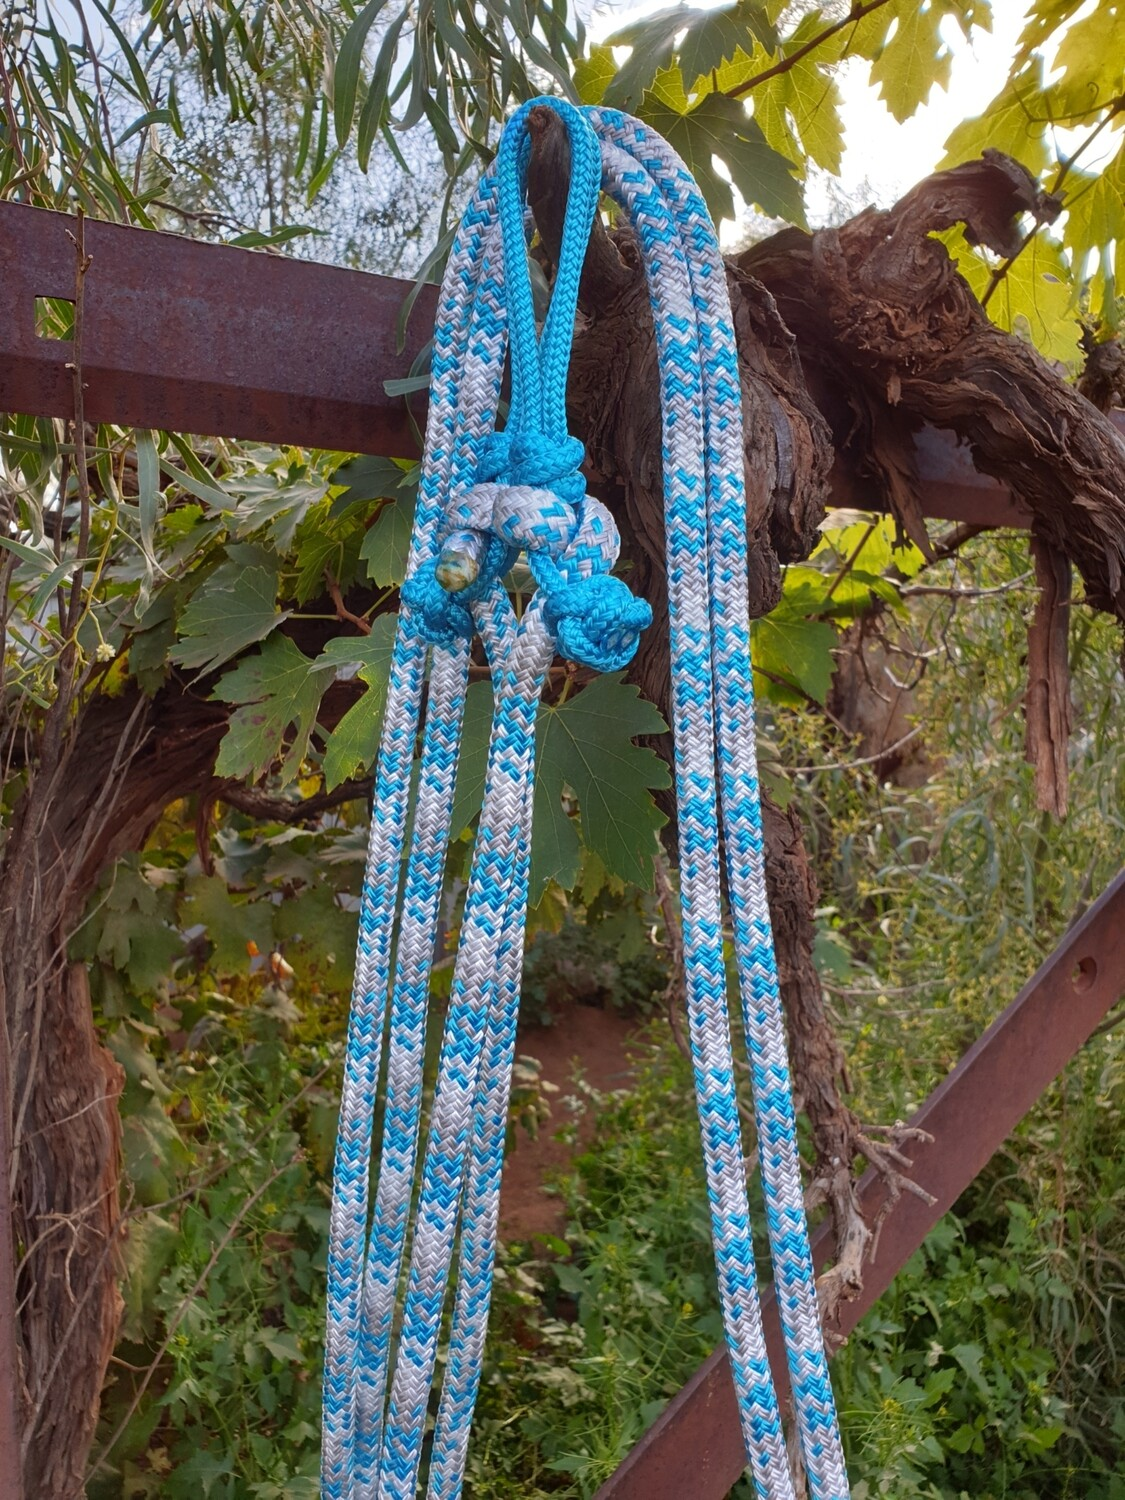 Aqua/Silver/White Rope Reins with Bit Connector